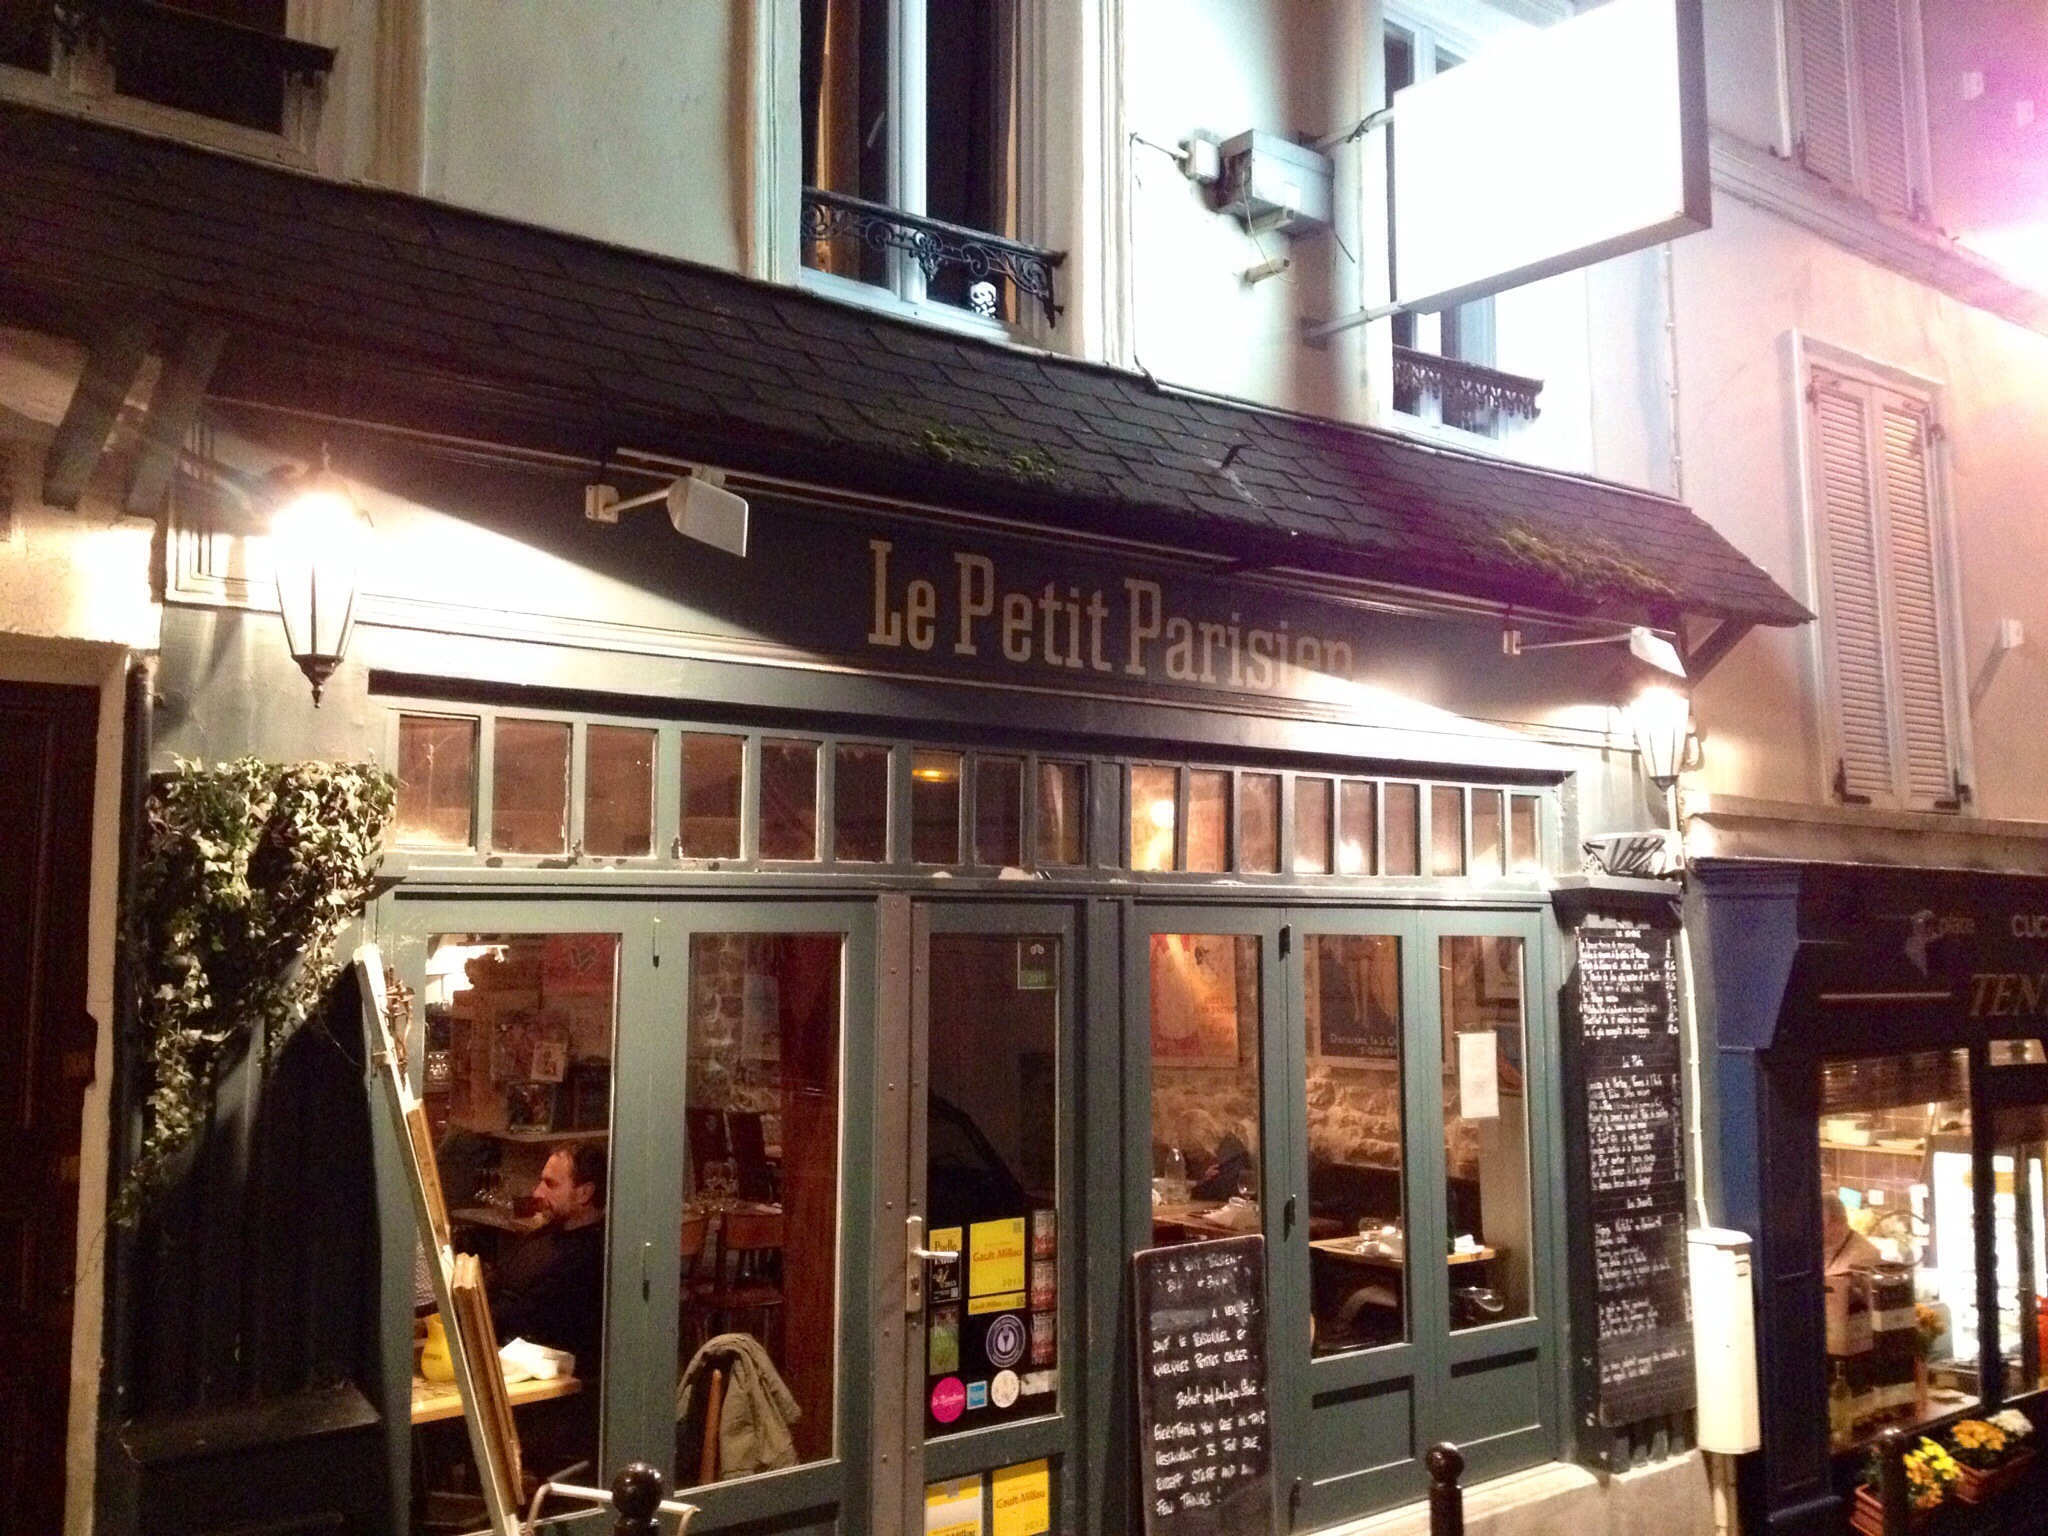 Le Petit Parisien, Montmartre, Paris (Did You Guess?)